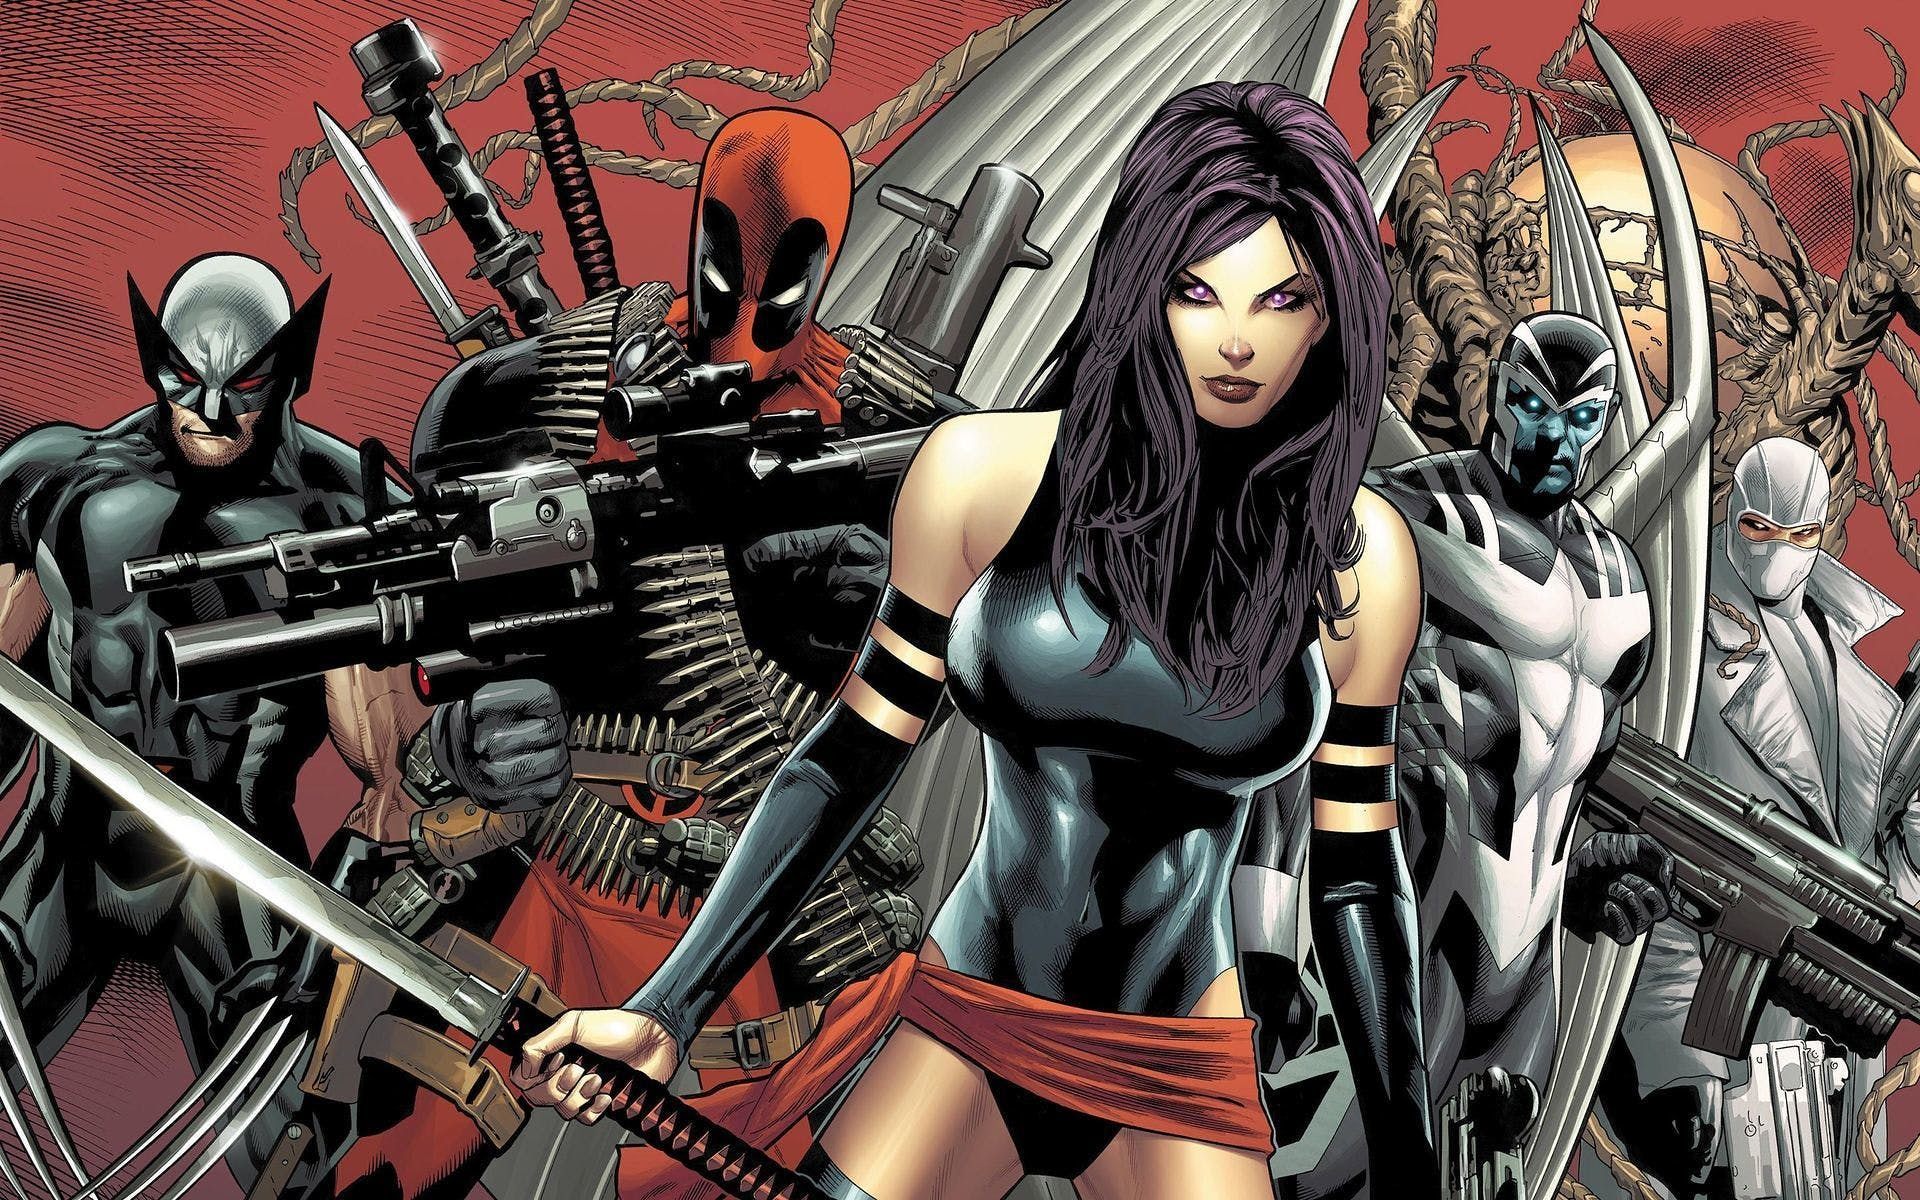 Drew Goddard's 'X-Force' To Move Forward, Unaffected by Fox-Disney Deal